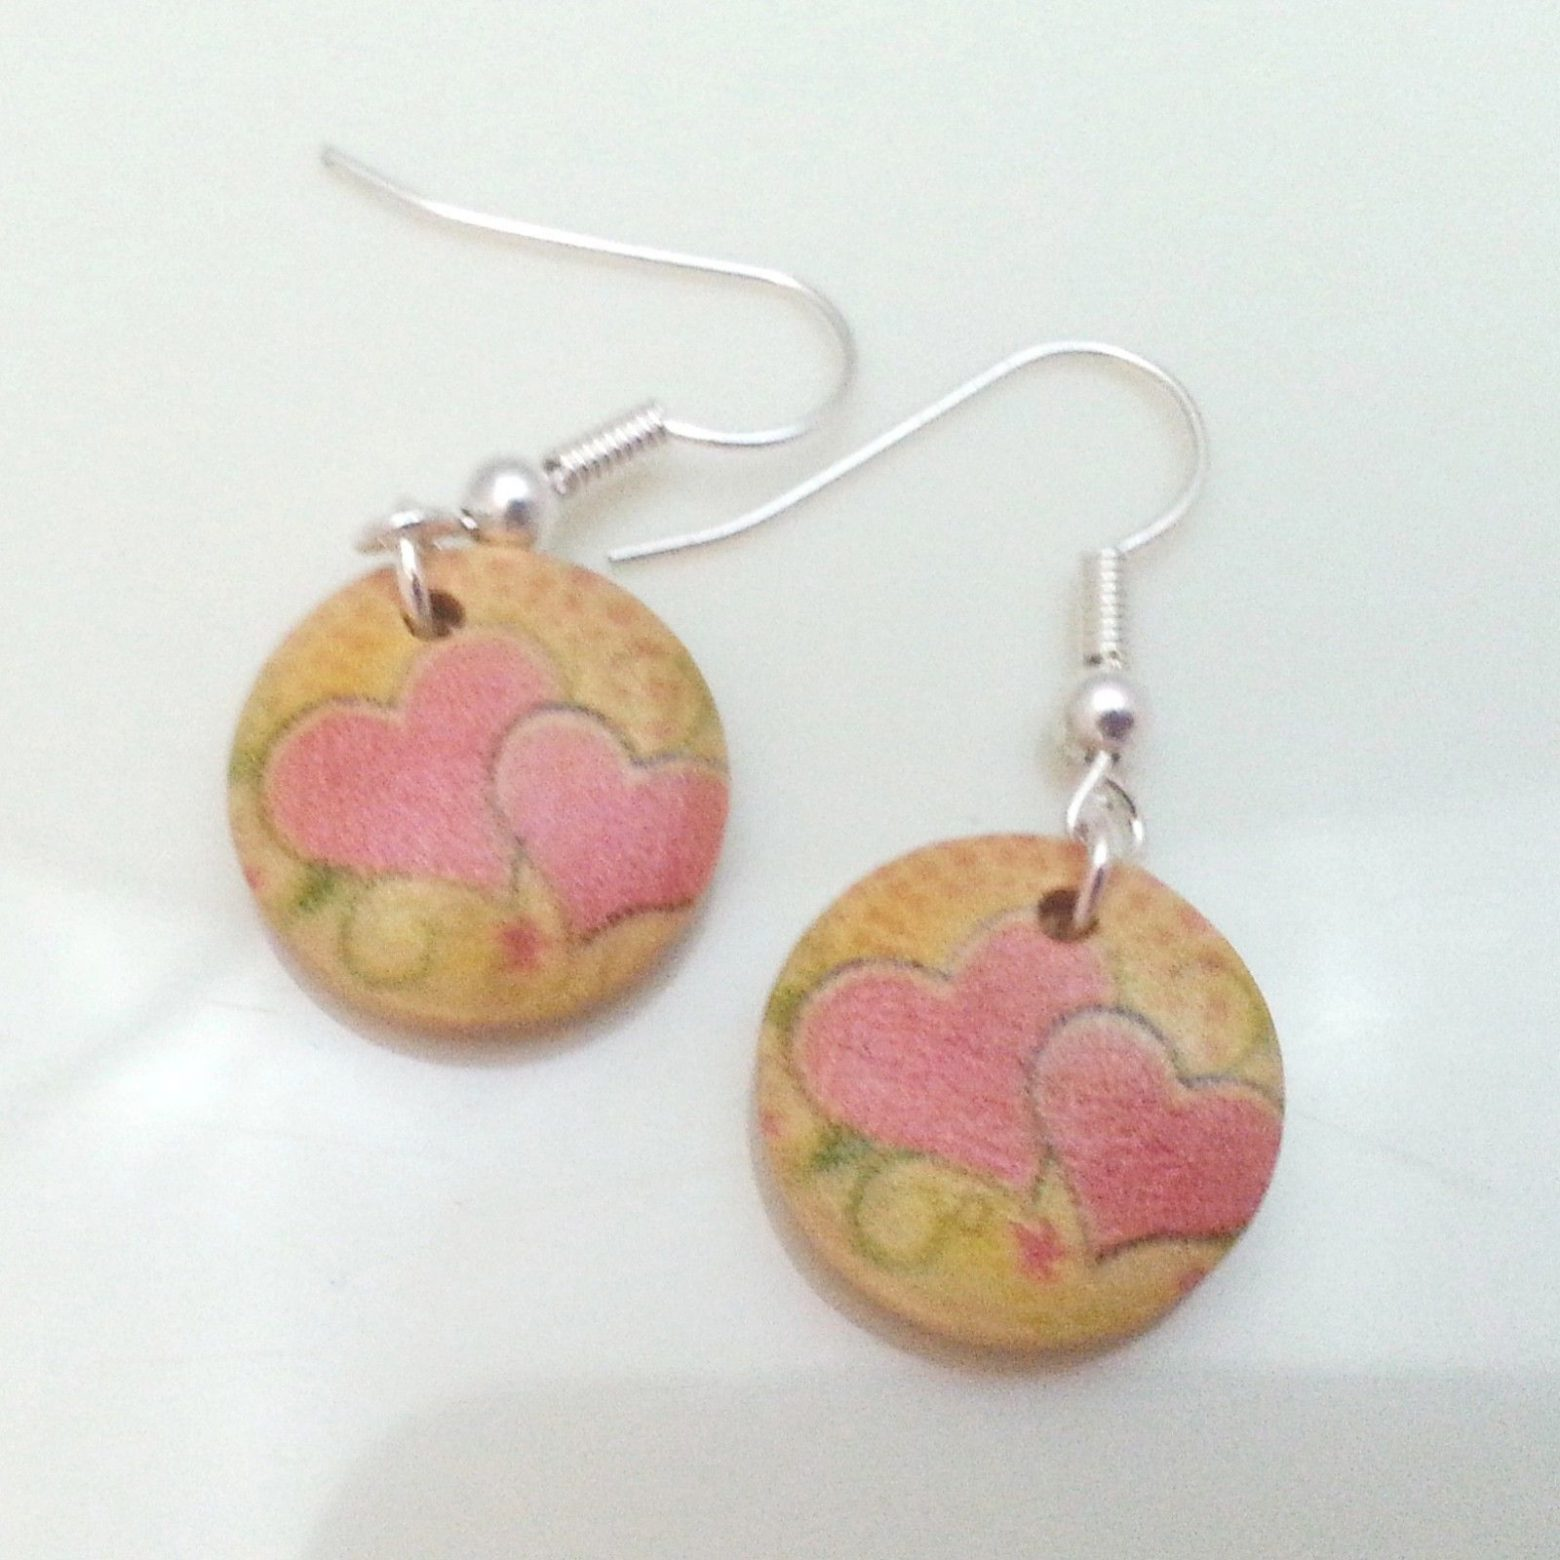 Light-Wooden-Jewellery-Earrings-Disc-Round-Wood-Pink-Hearts-Flowers-Womens-New-400739840145